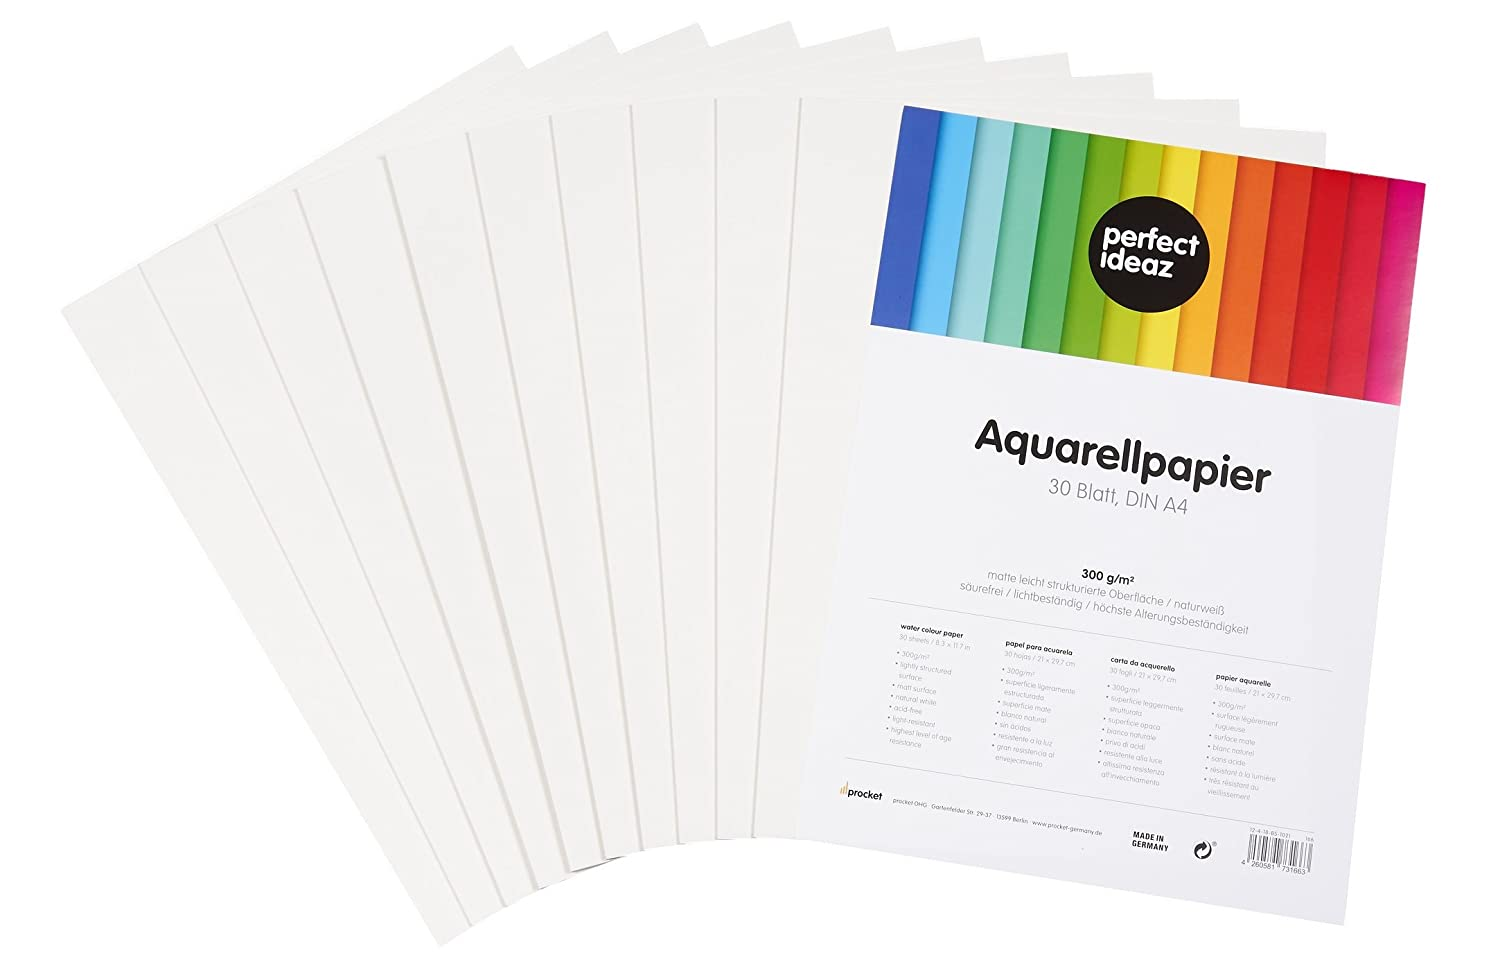 perfect ideaz 30 sheets DIN A4 watercolour paper 300g, white, art paper lightly textured & matt, watercolour paper for artists, pupils and students procket 14428498